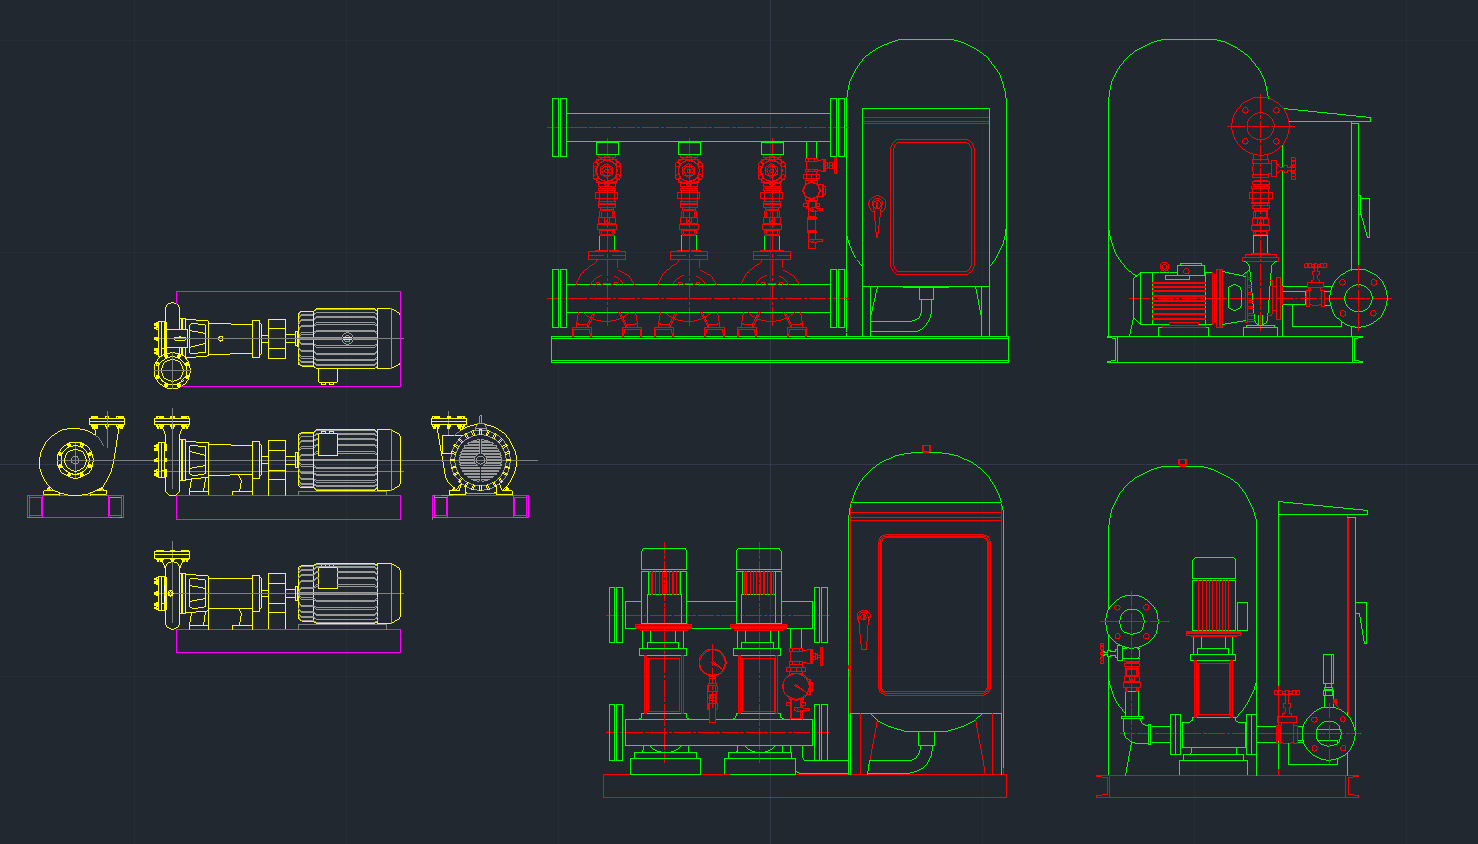 3 way rotary switch wiring diagram fan booster pump autocad free cad block symbol and cad drawing  booster pump autocad free cad block symbol and cad drawing